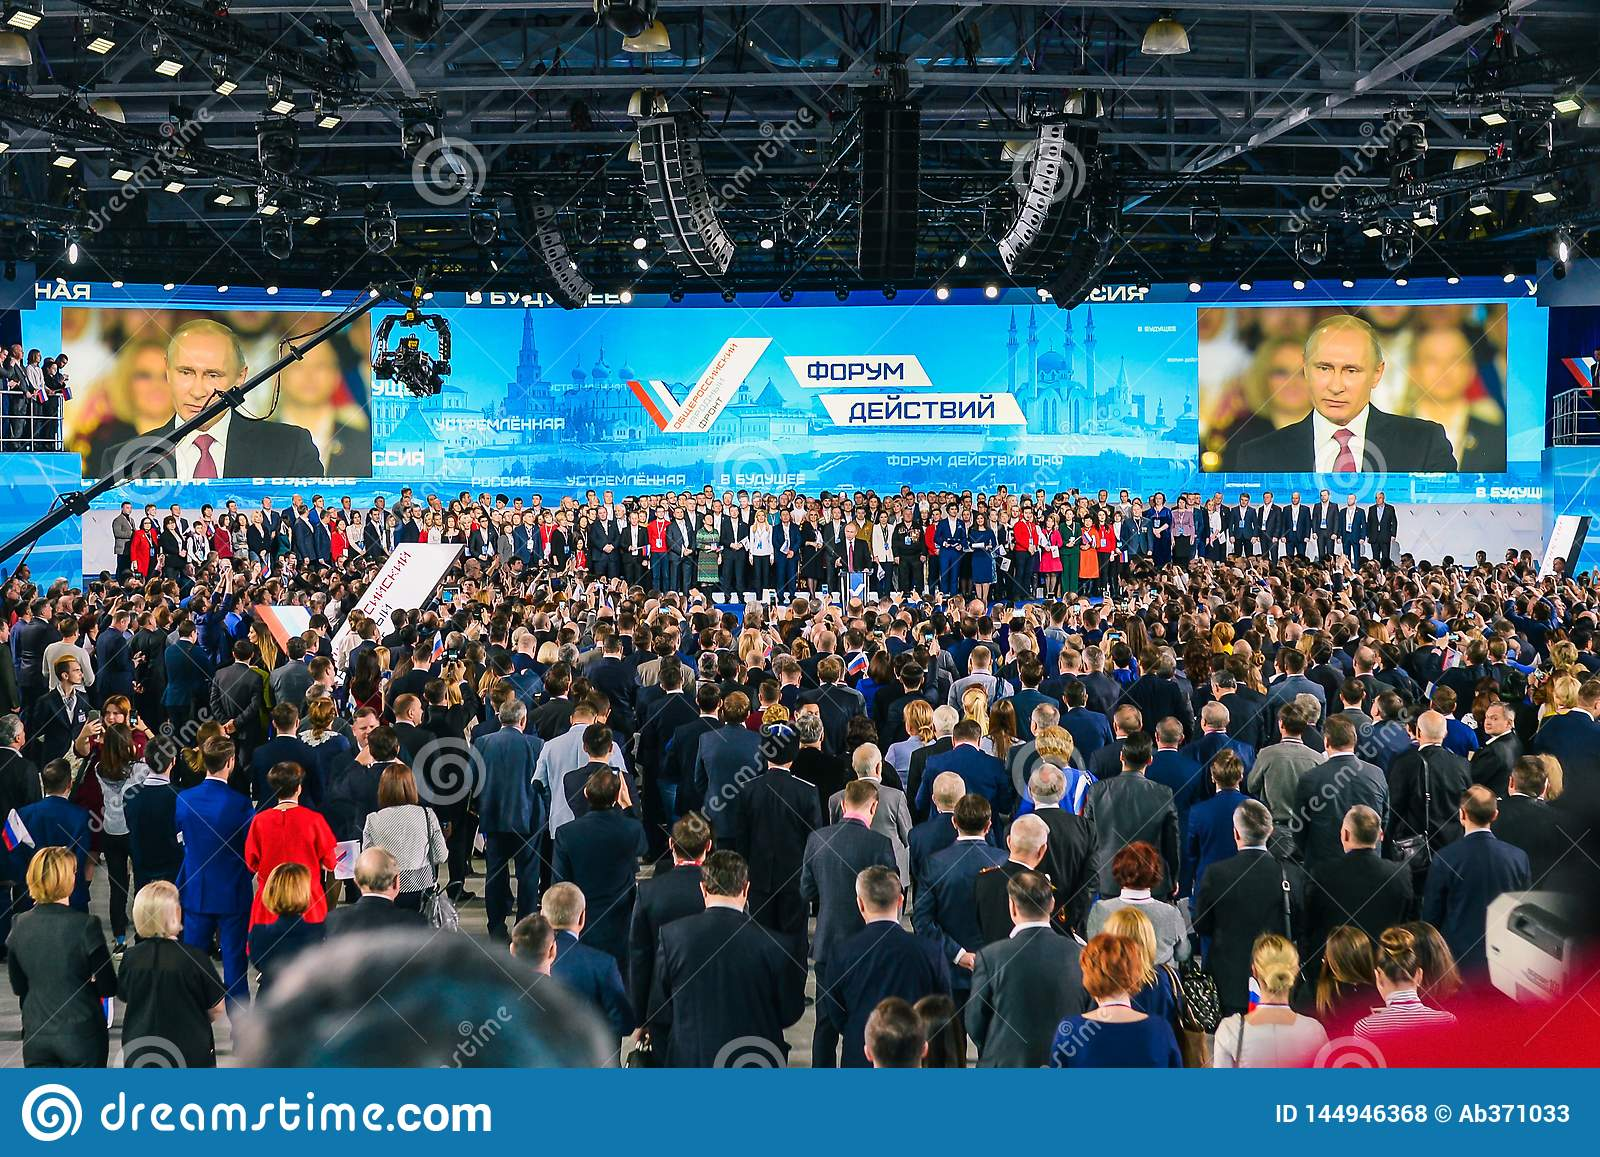 Russia, city Moscow - December 18, 2017: Speech by the President of the Russian Federation on the forum. A crowd of